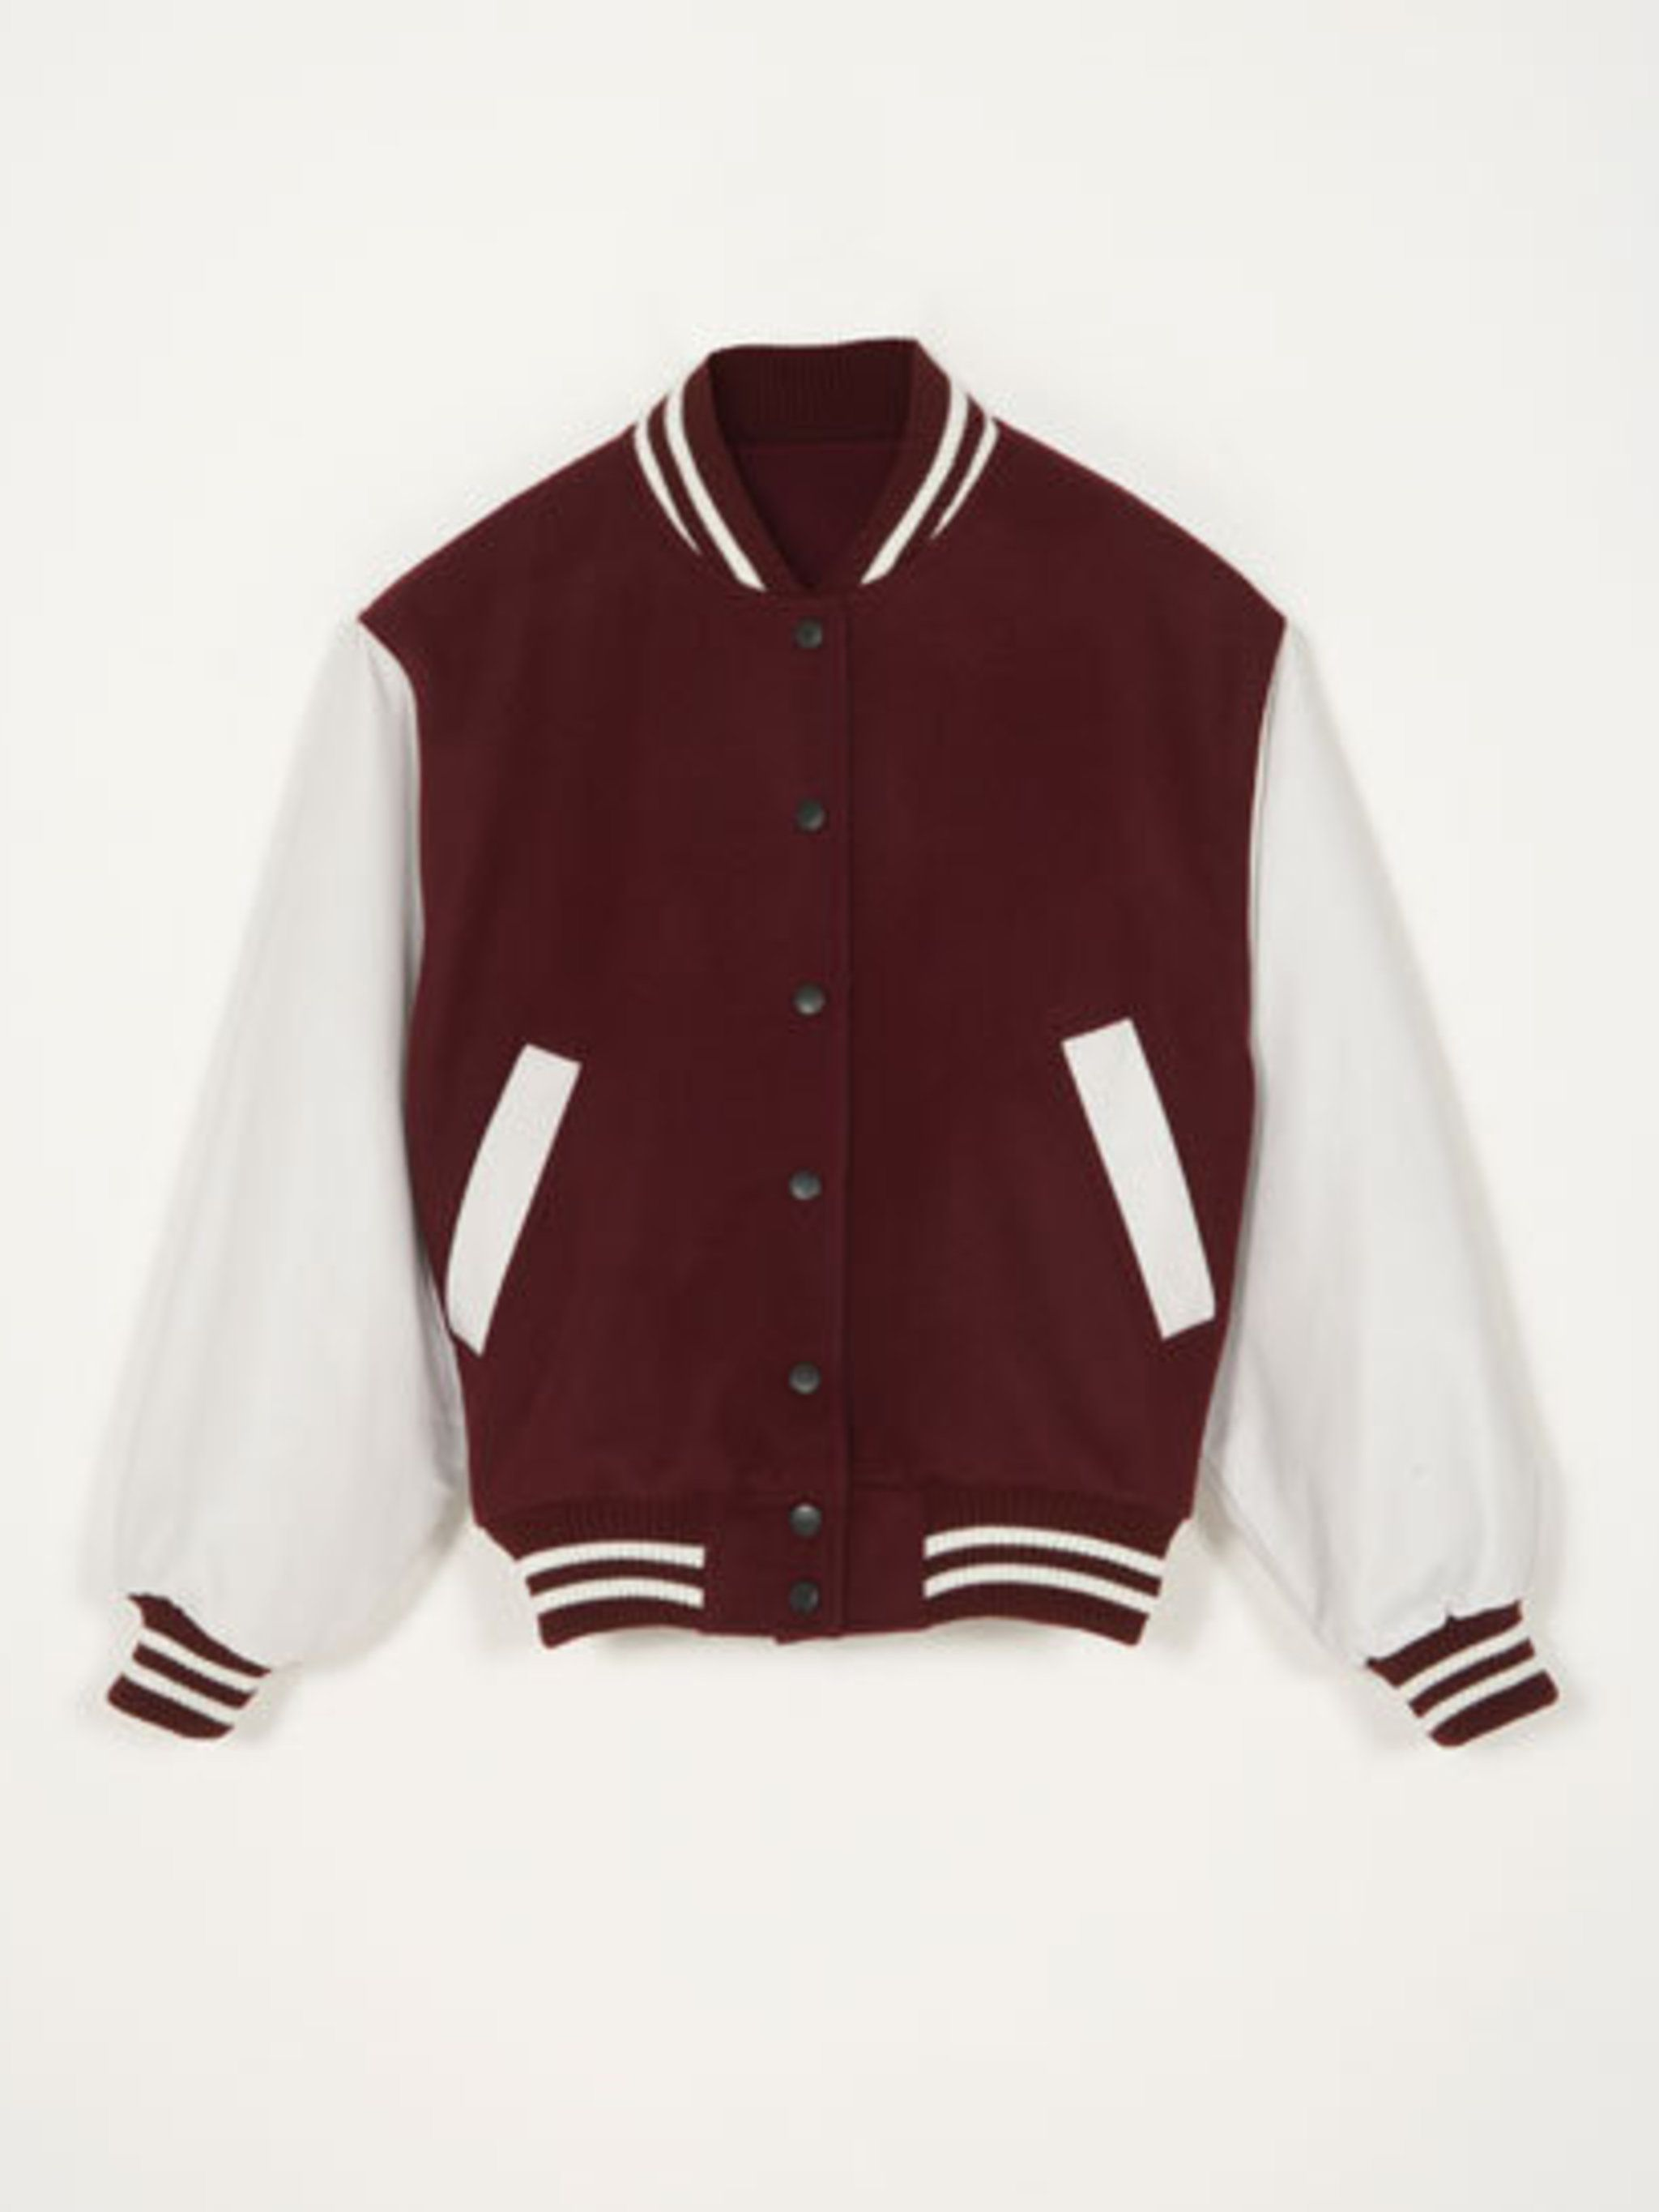 <p>J W Anderson for Topshop baseball jacket</p>